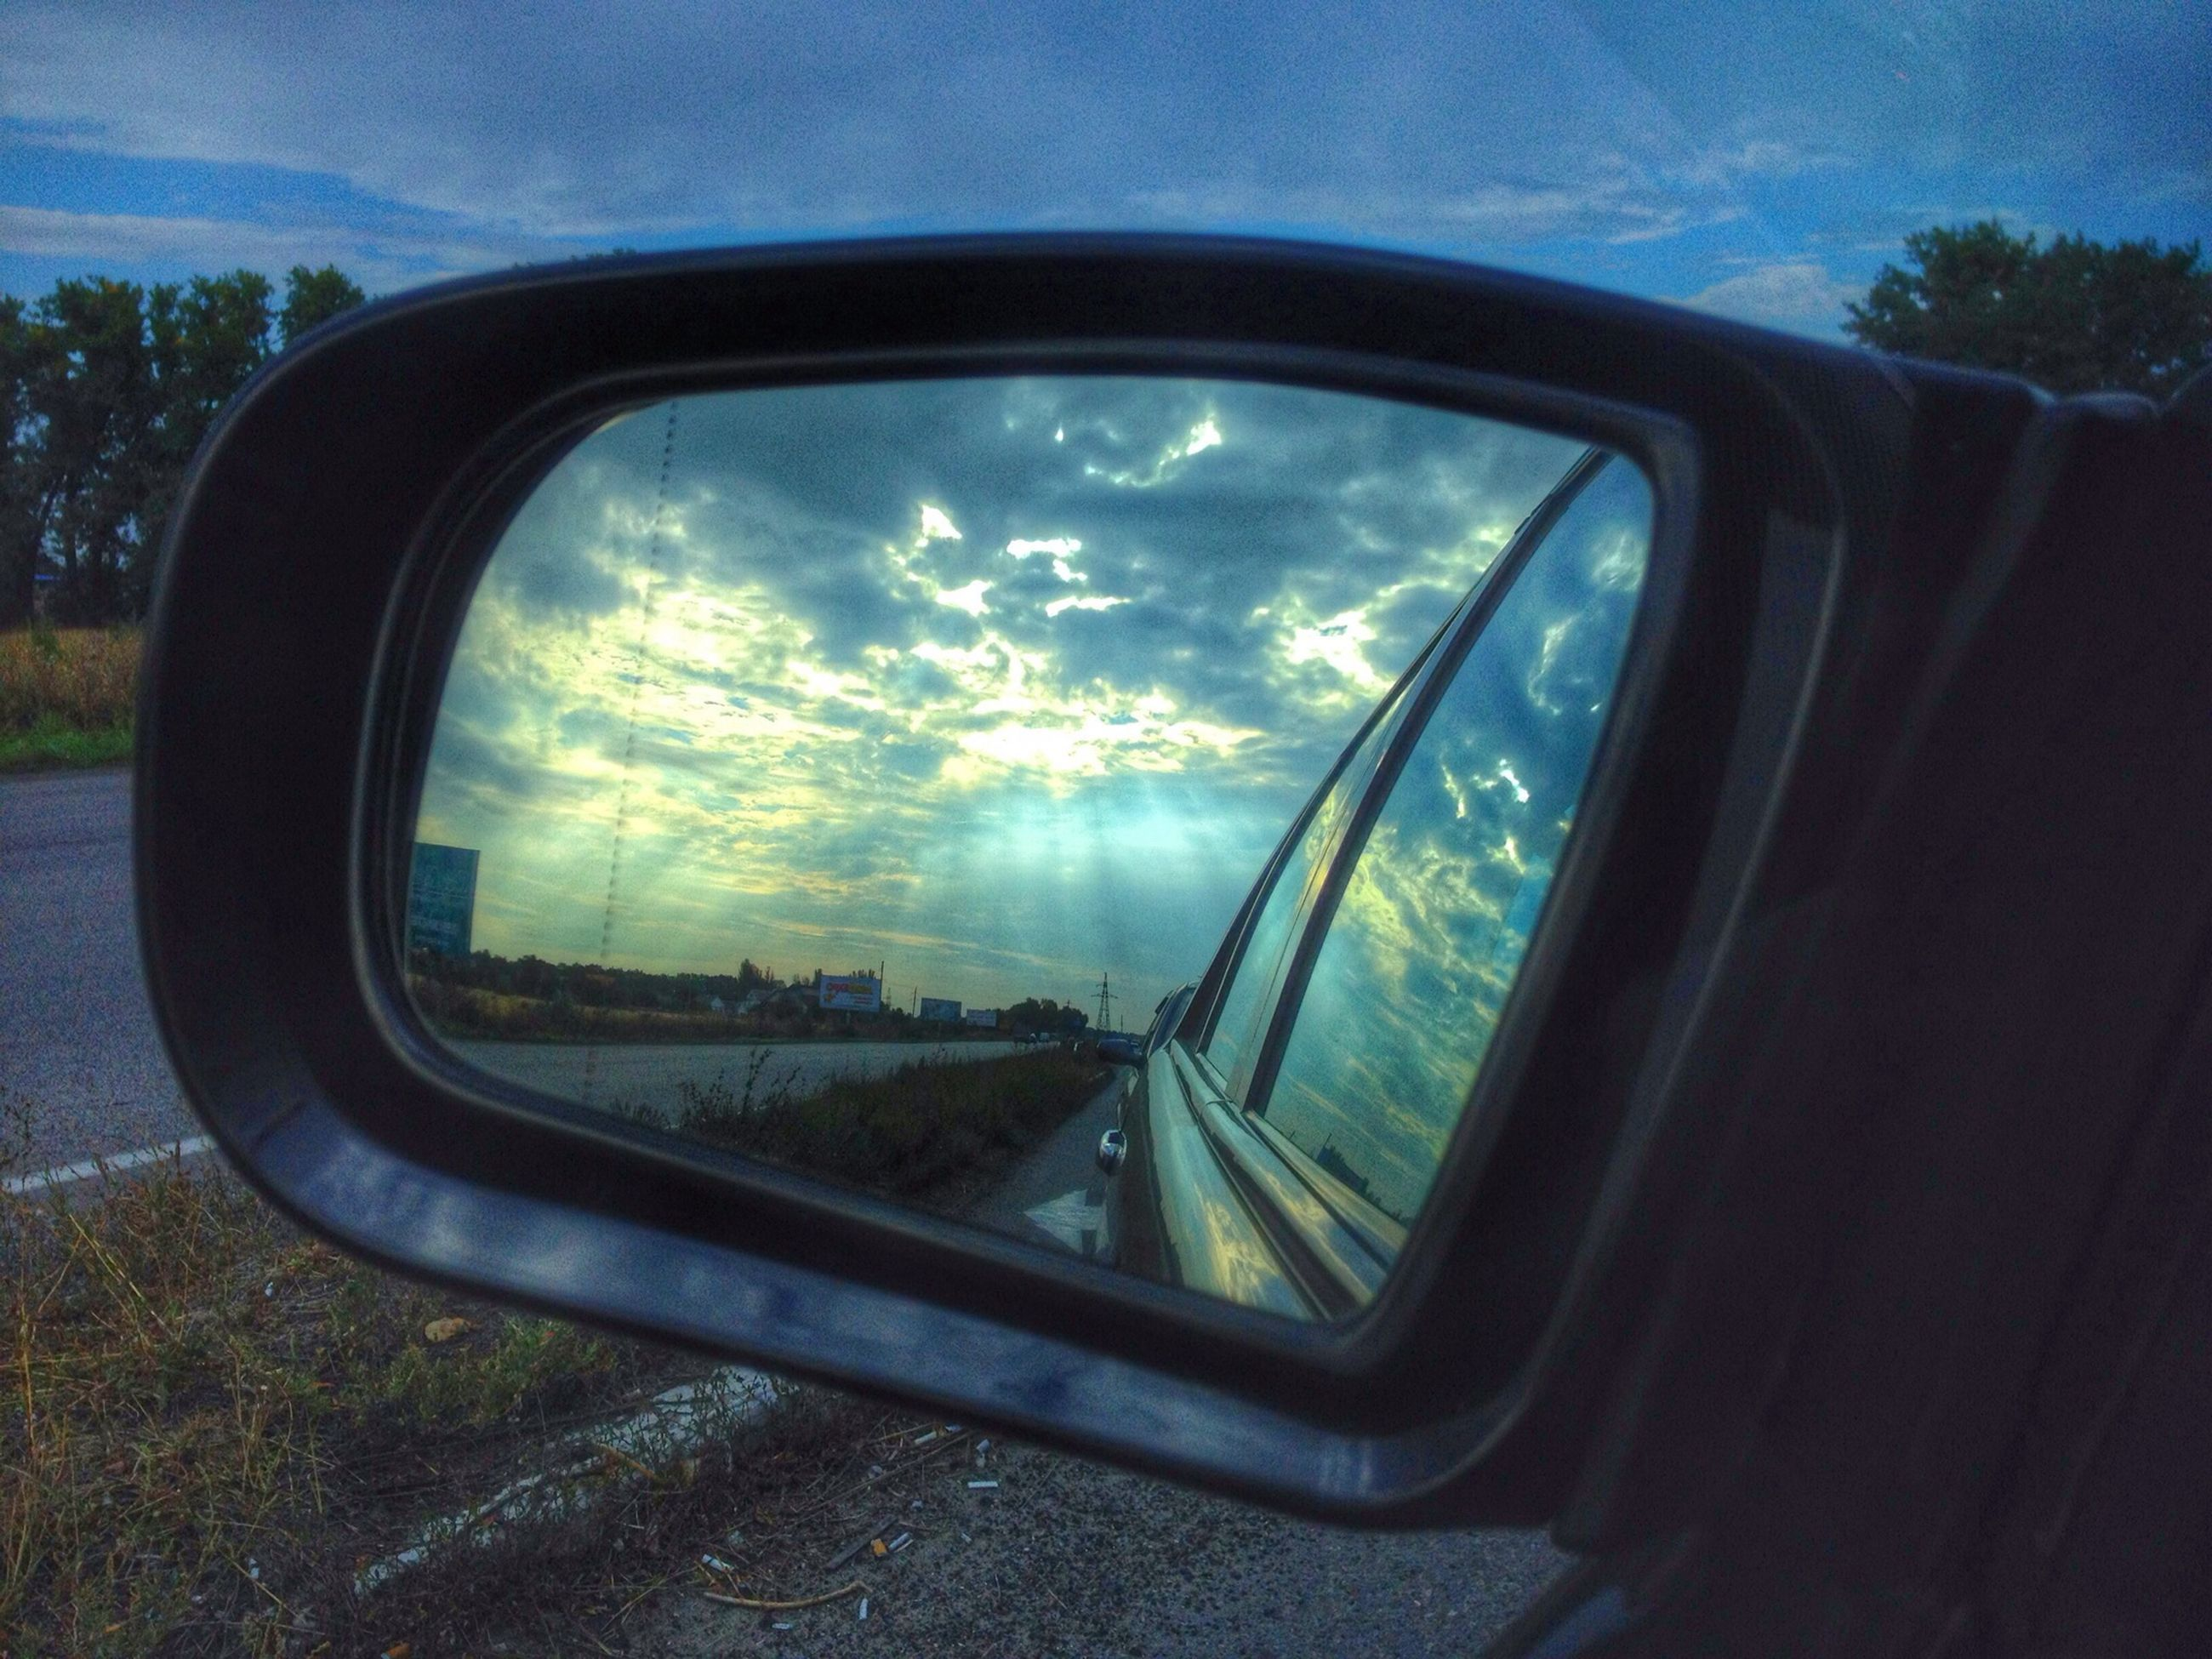 transportation, glass - material, sky, car, transparent, mode of transport, side-view mirror, land vehicle, cloud - sky, window, vehicle interior, reflection, cloud, road, part of, sunlight, landscape, car interior, sun, tree